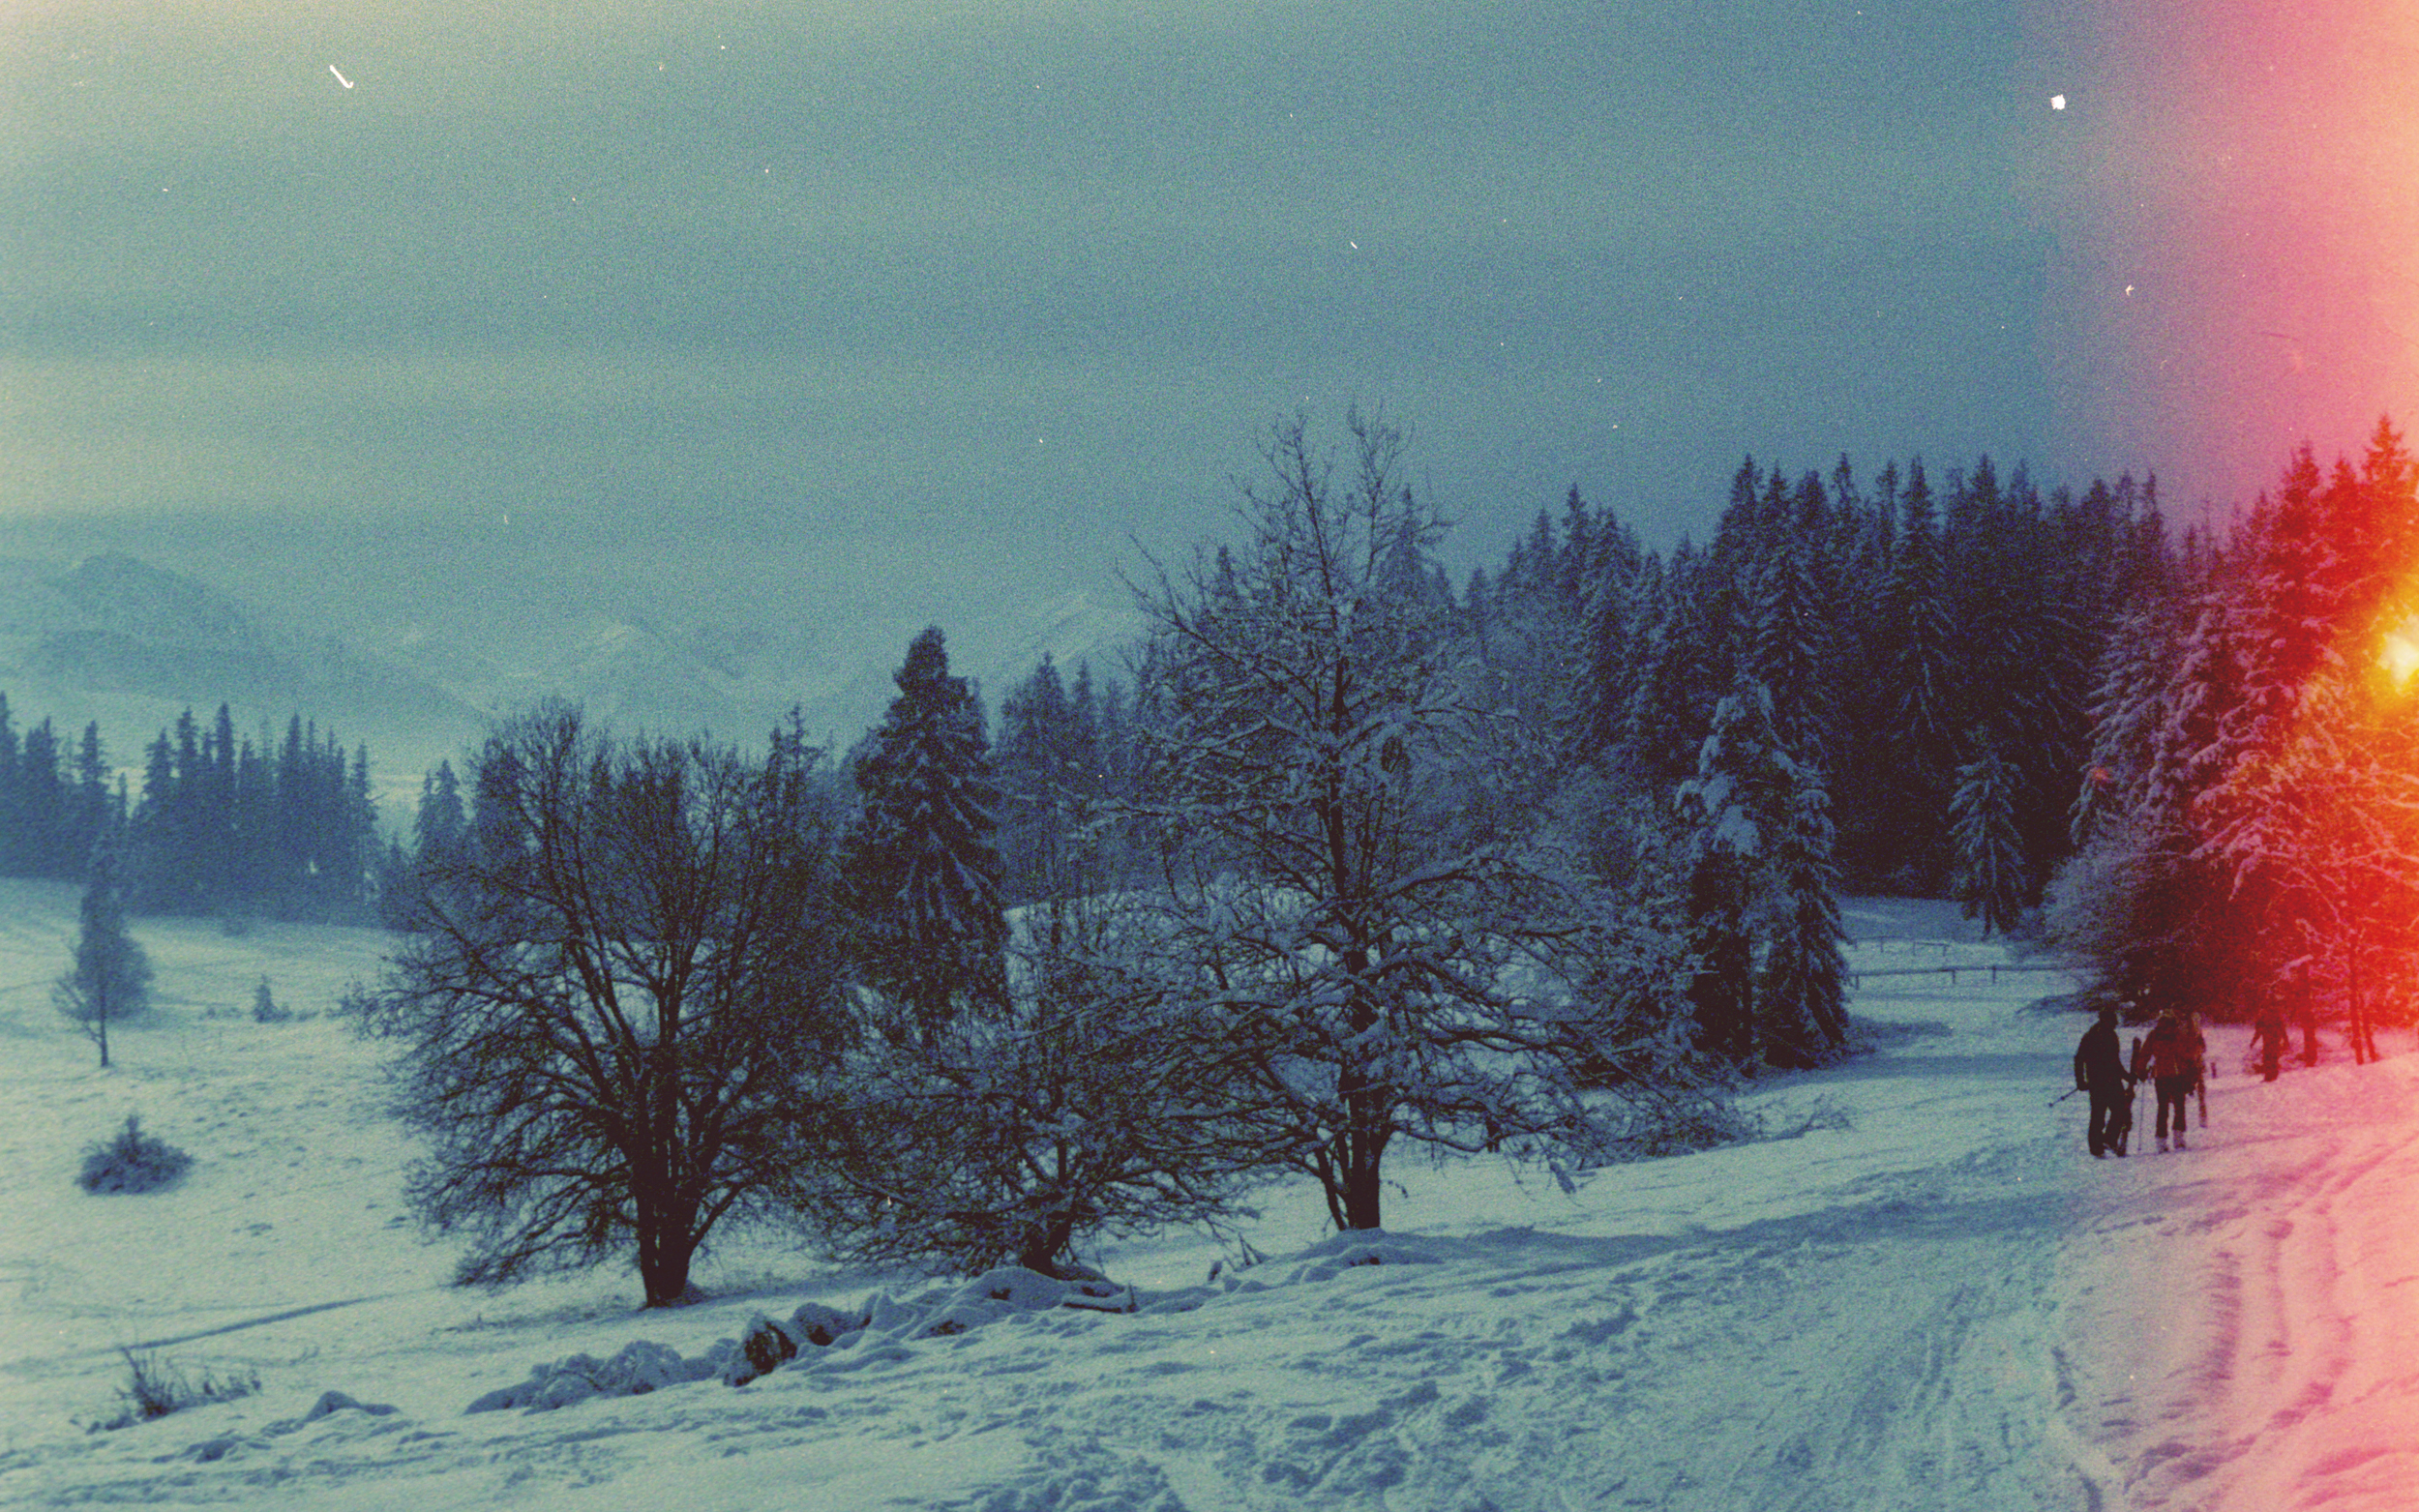 Enchanting+snow+forests+of+Poland+_+Karl+Mackie+Photography.jpeg